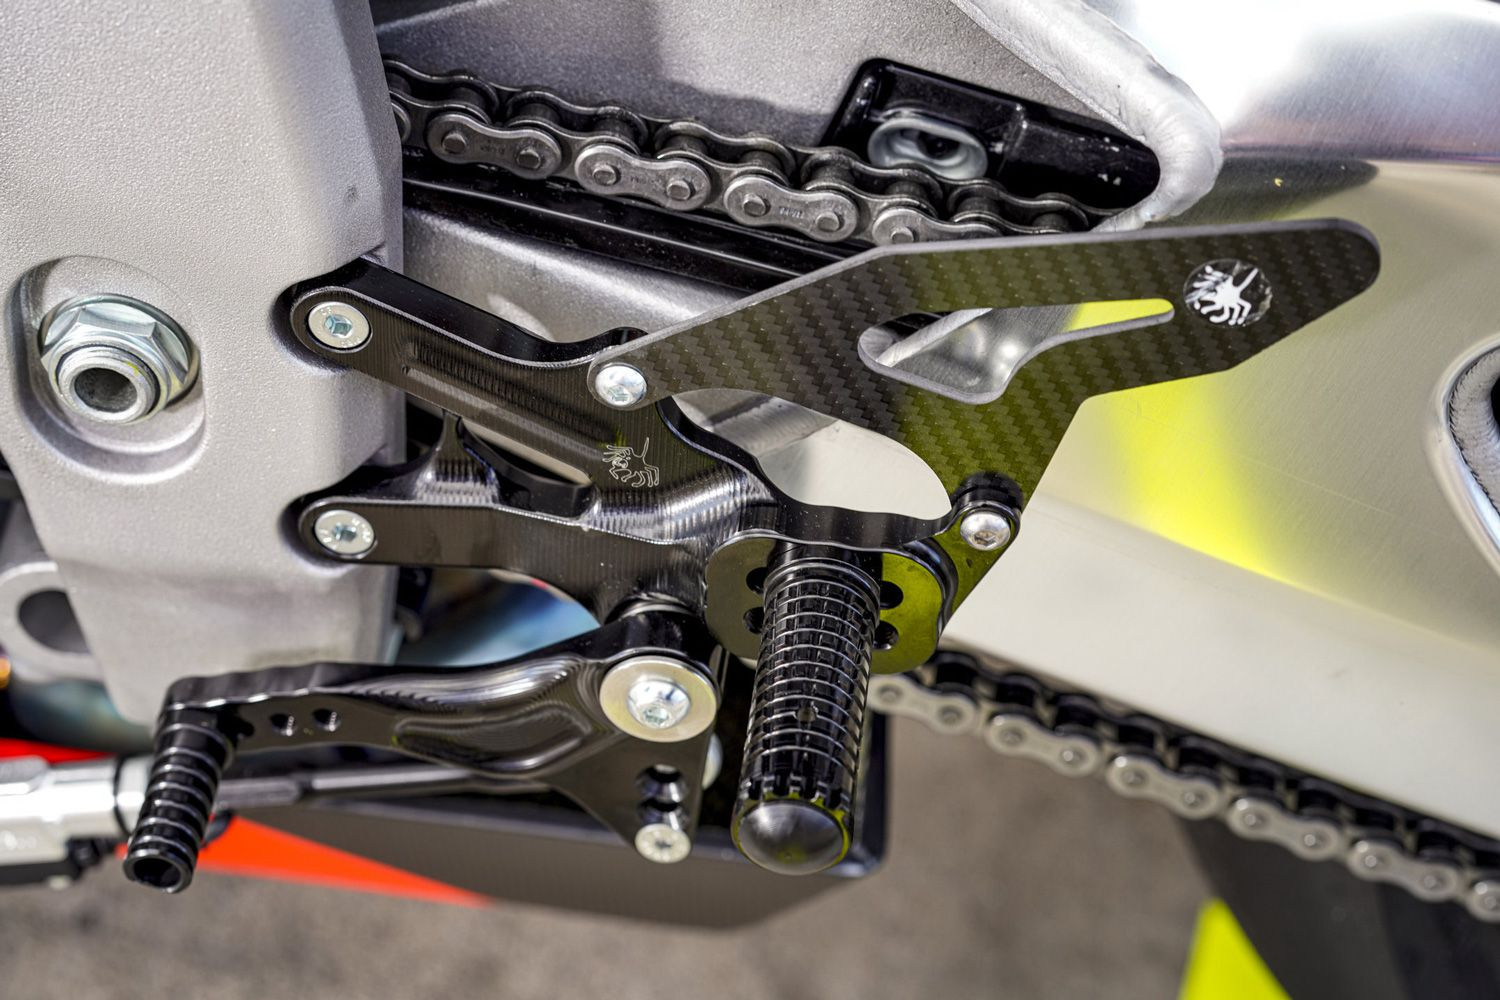 Up/down quickshifter enables clutchless shifts. Note adjustable footpegs.